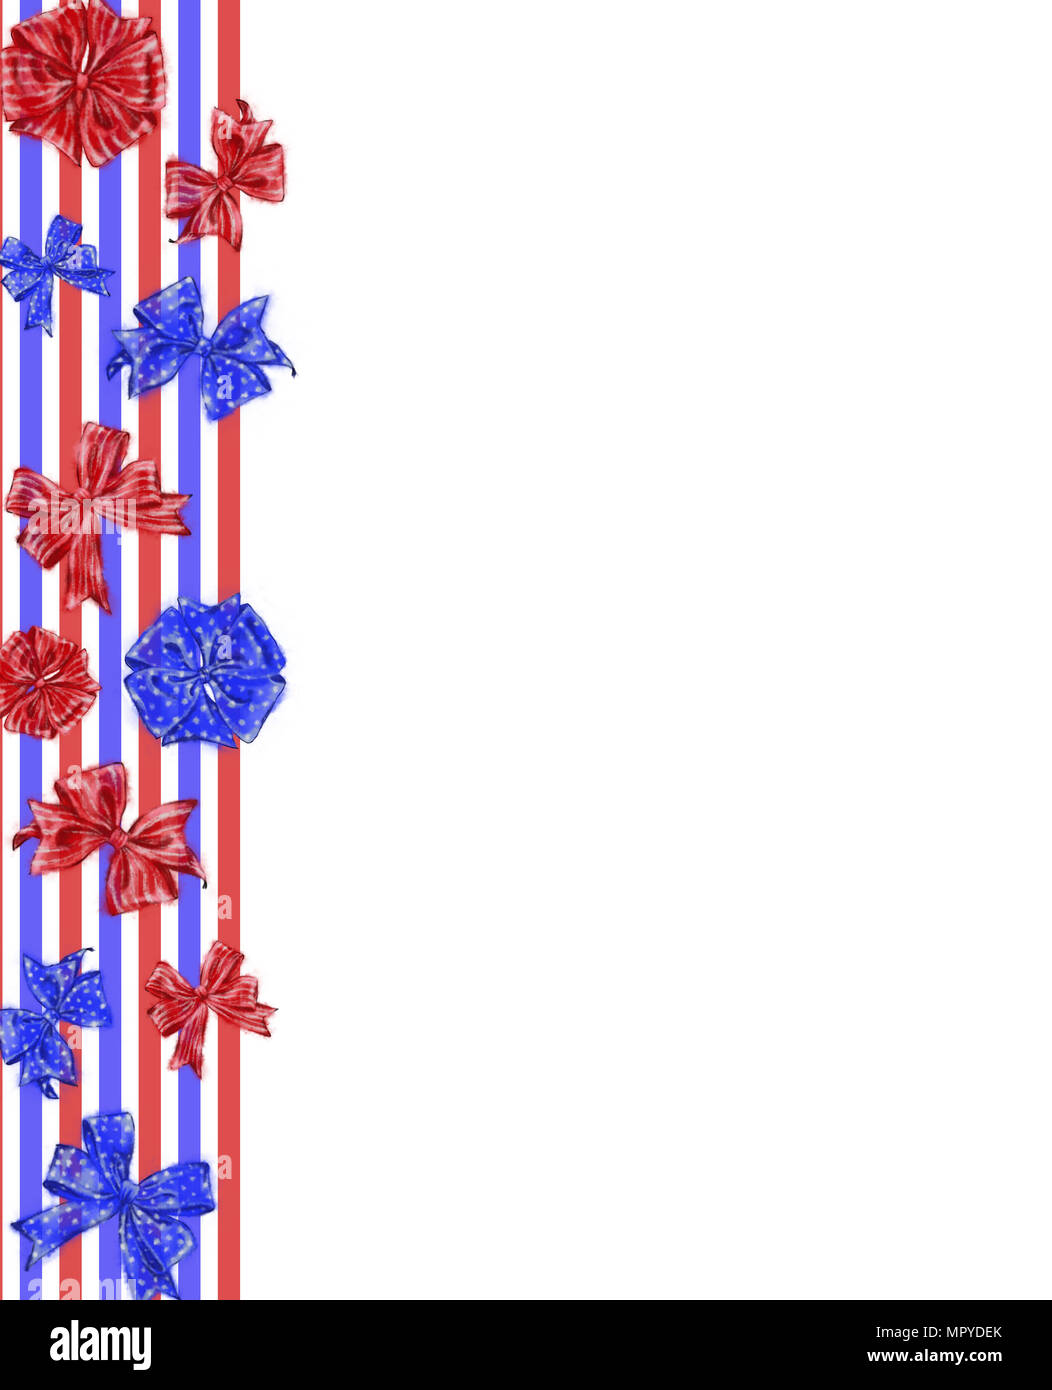 patriotic template design with tricolor ribbons and bows 4th of